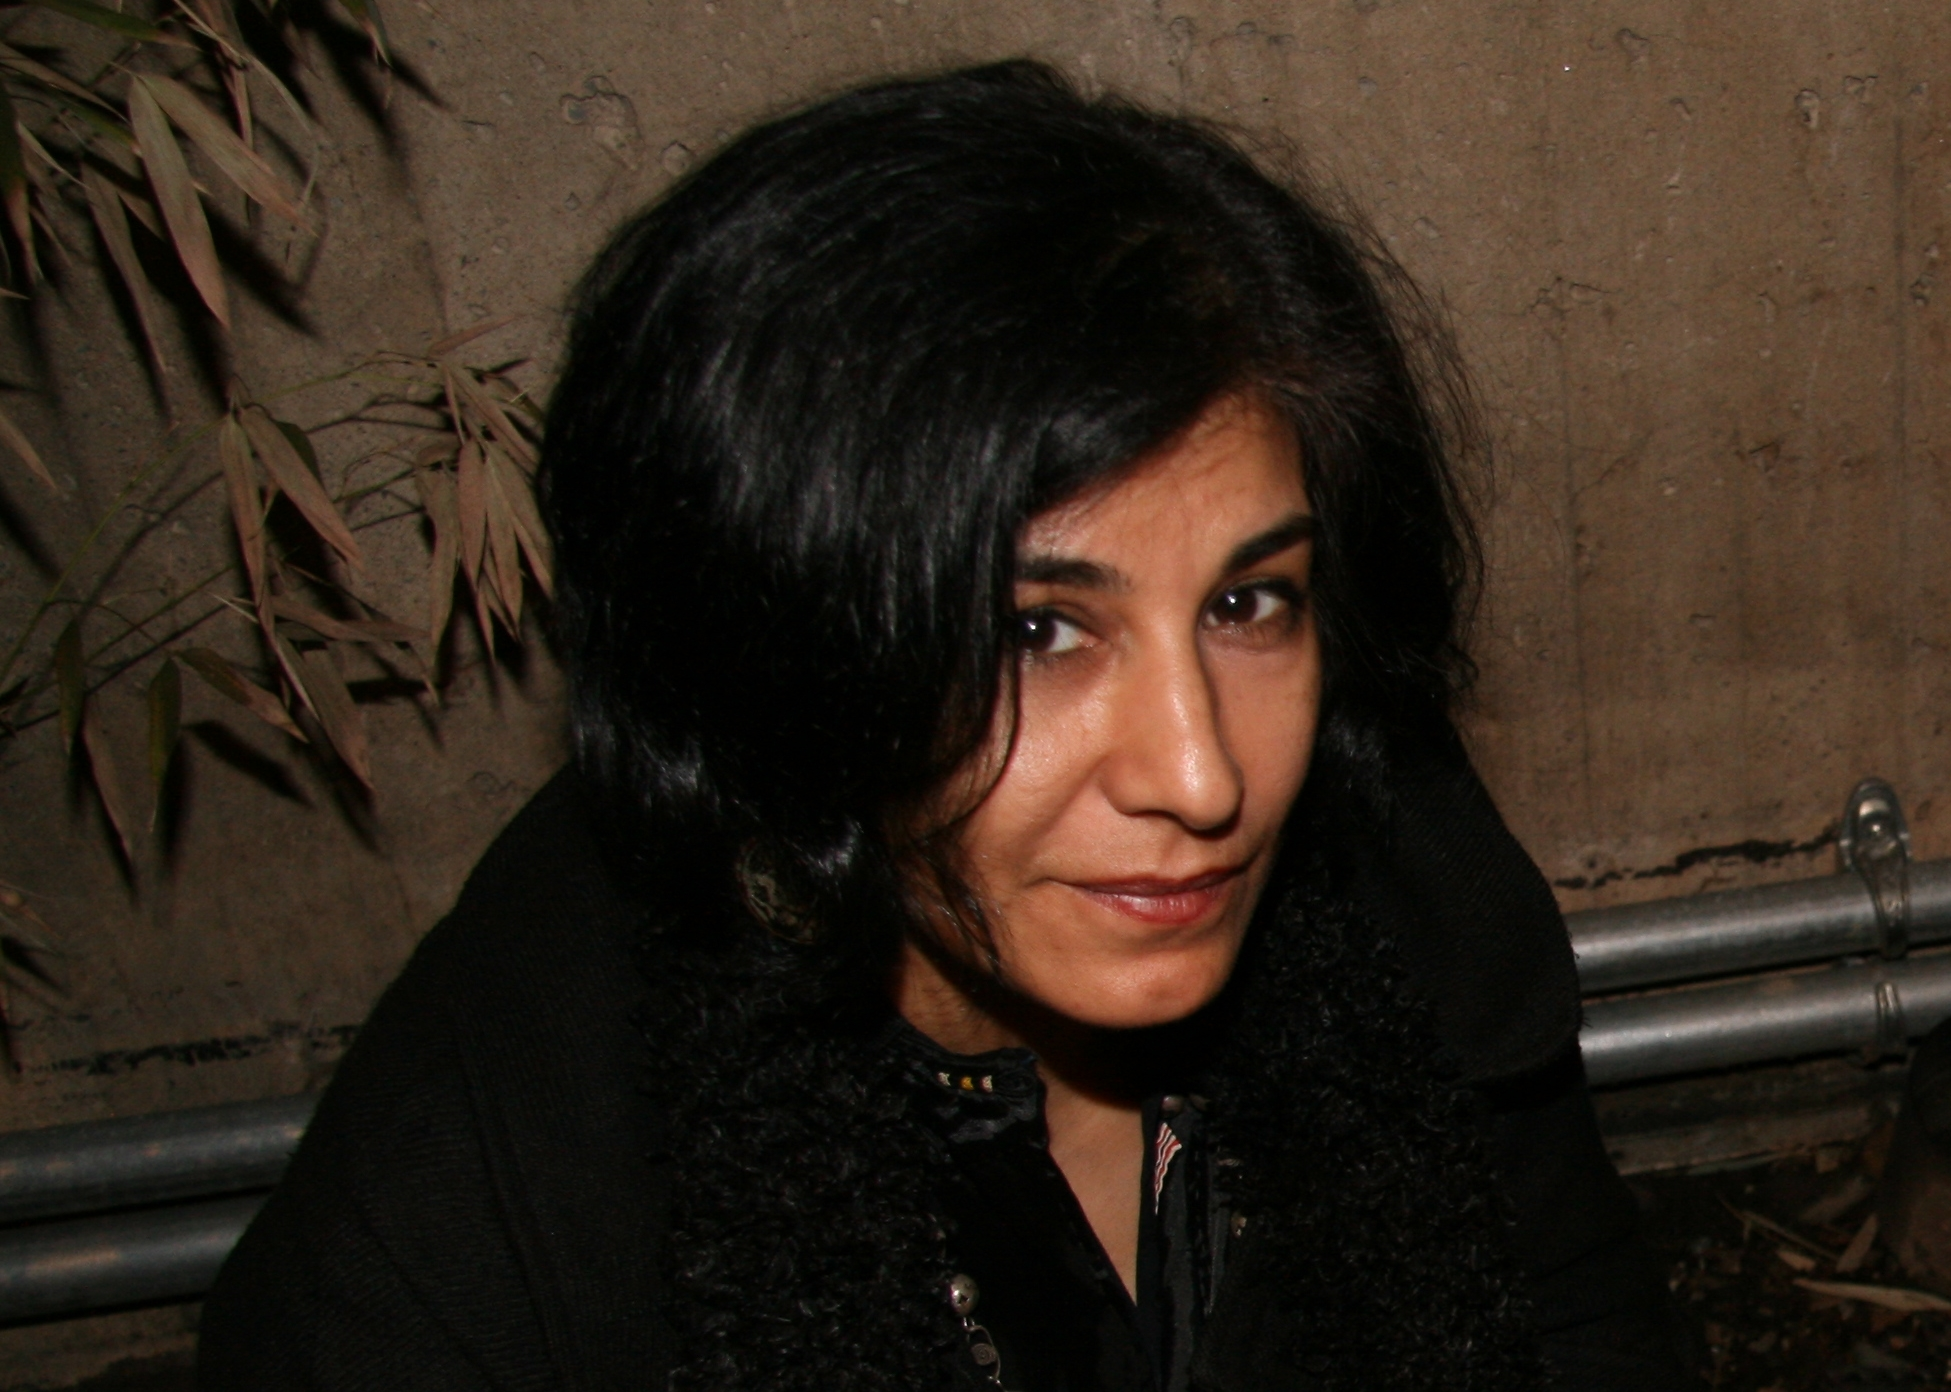 Samira Abbassy. Crédit photo : Flickr